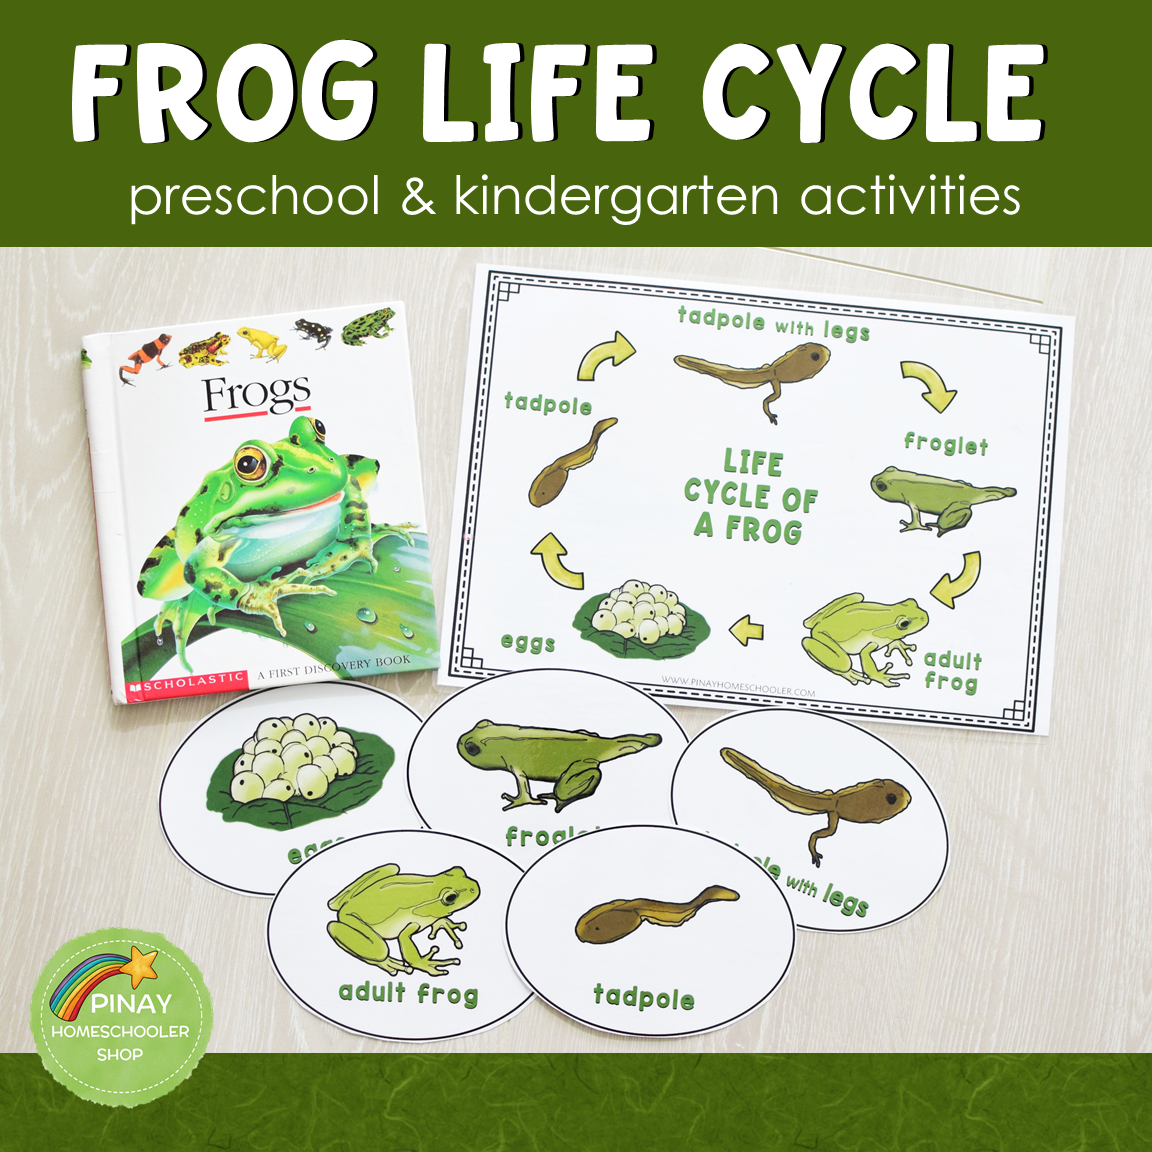 Life Cycle Of A Frog Learning Activities The Pinay